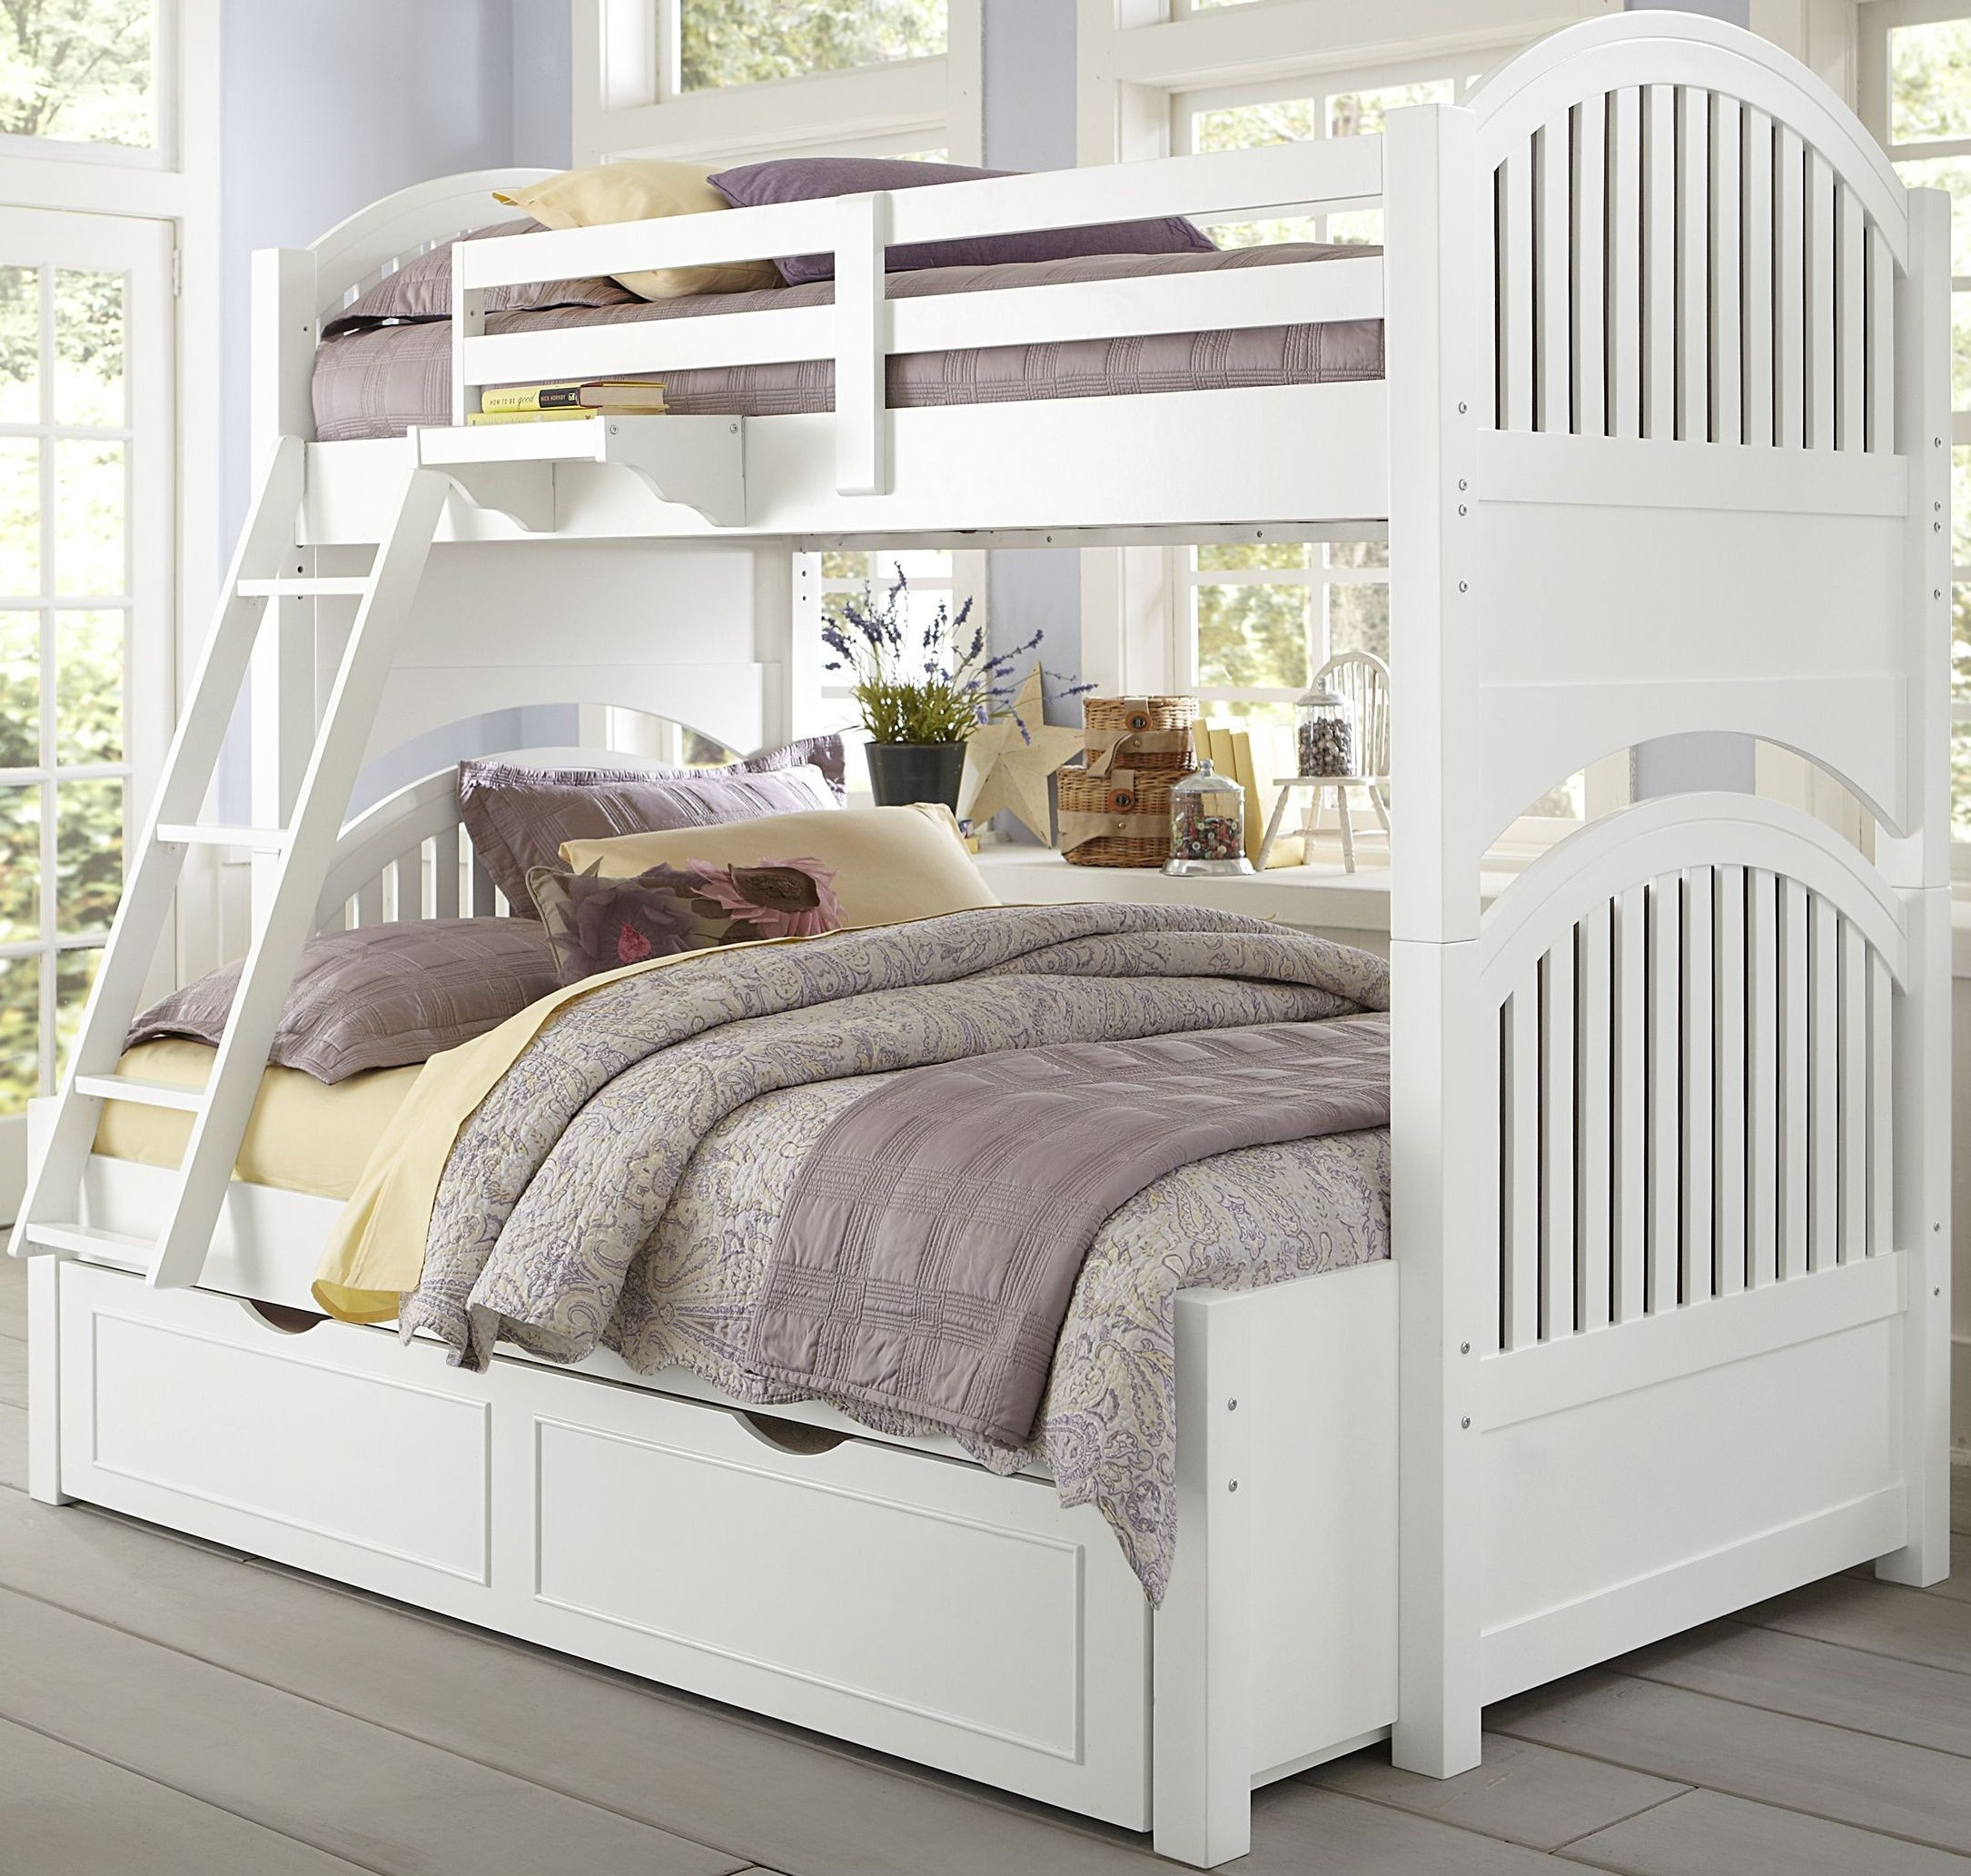 lake house white adrian twin over full bunk bed with trundle from ne kids coleman furniture. Black Bedroom Furniture Sets. Home Design Ideas